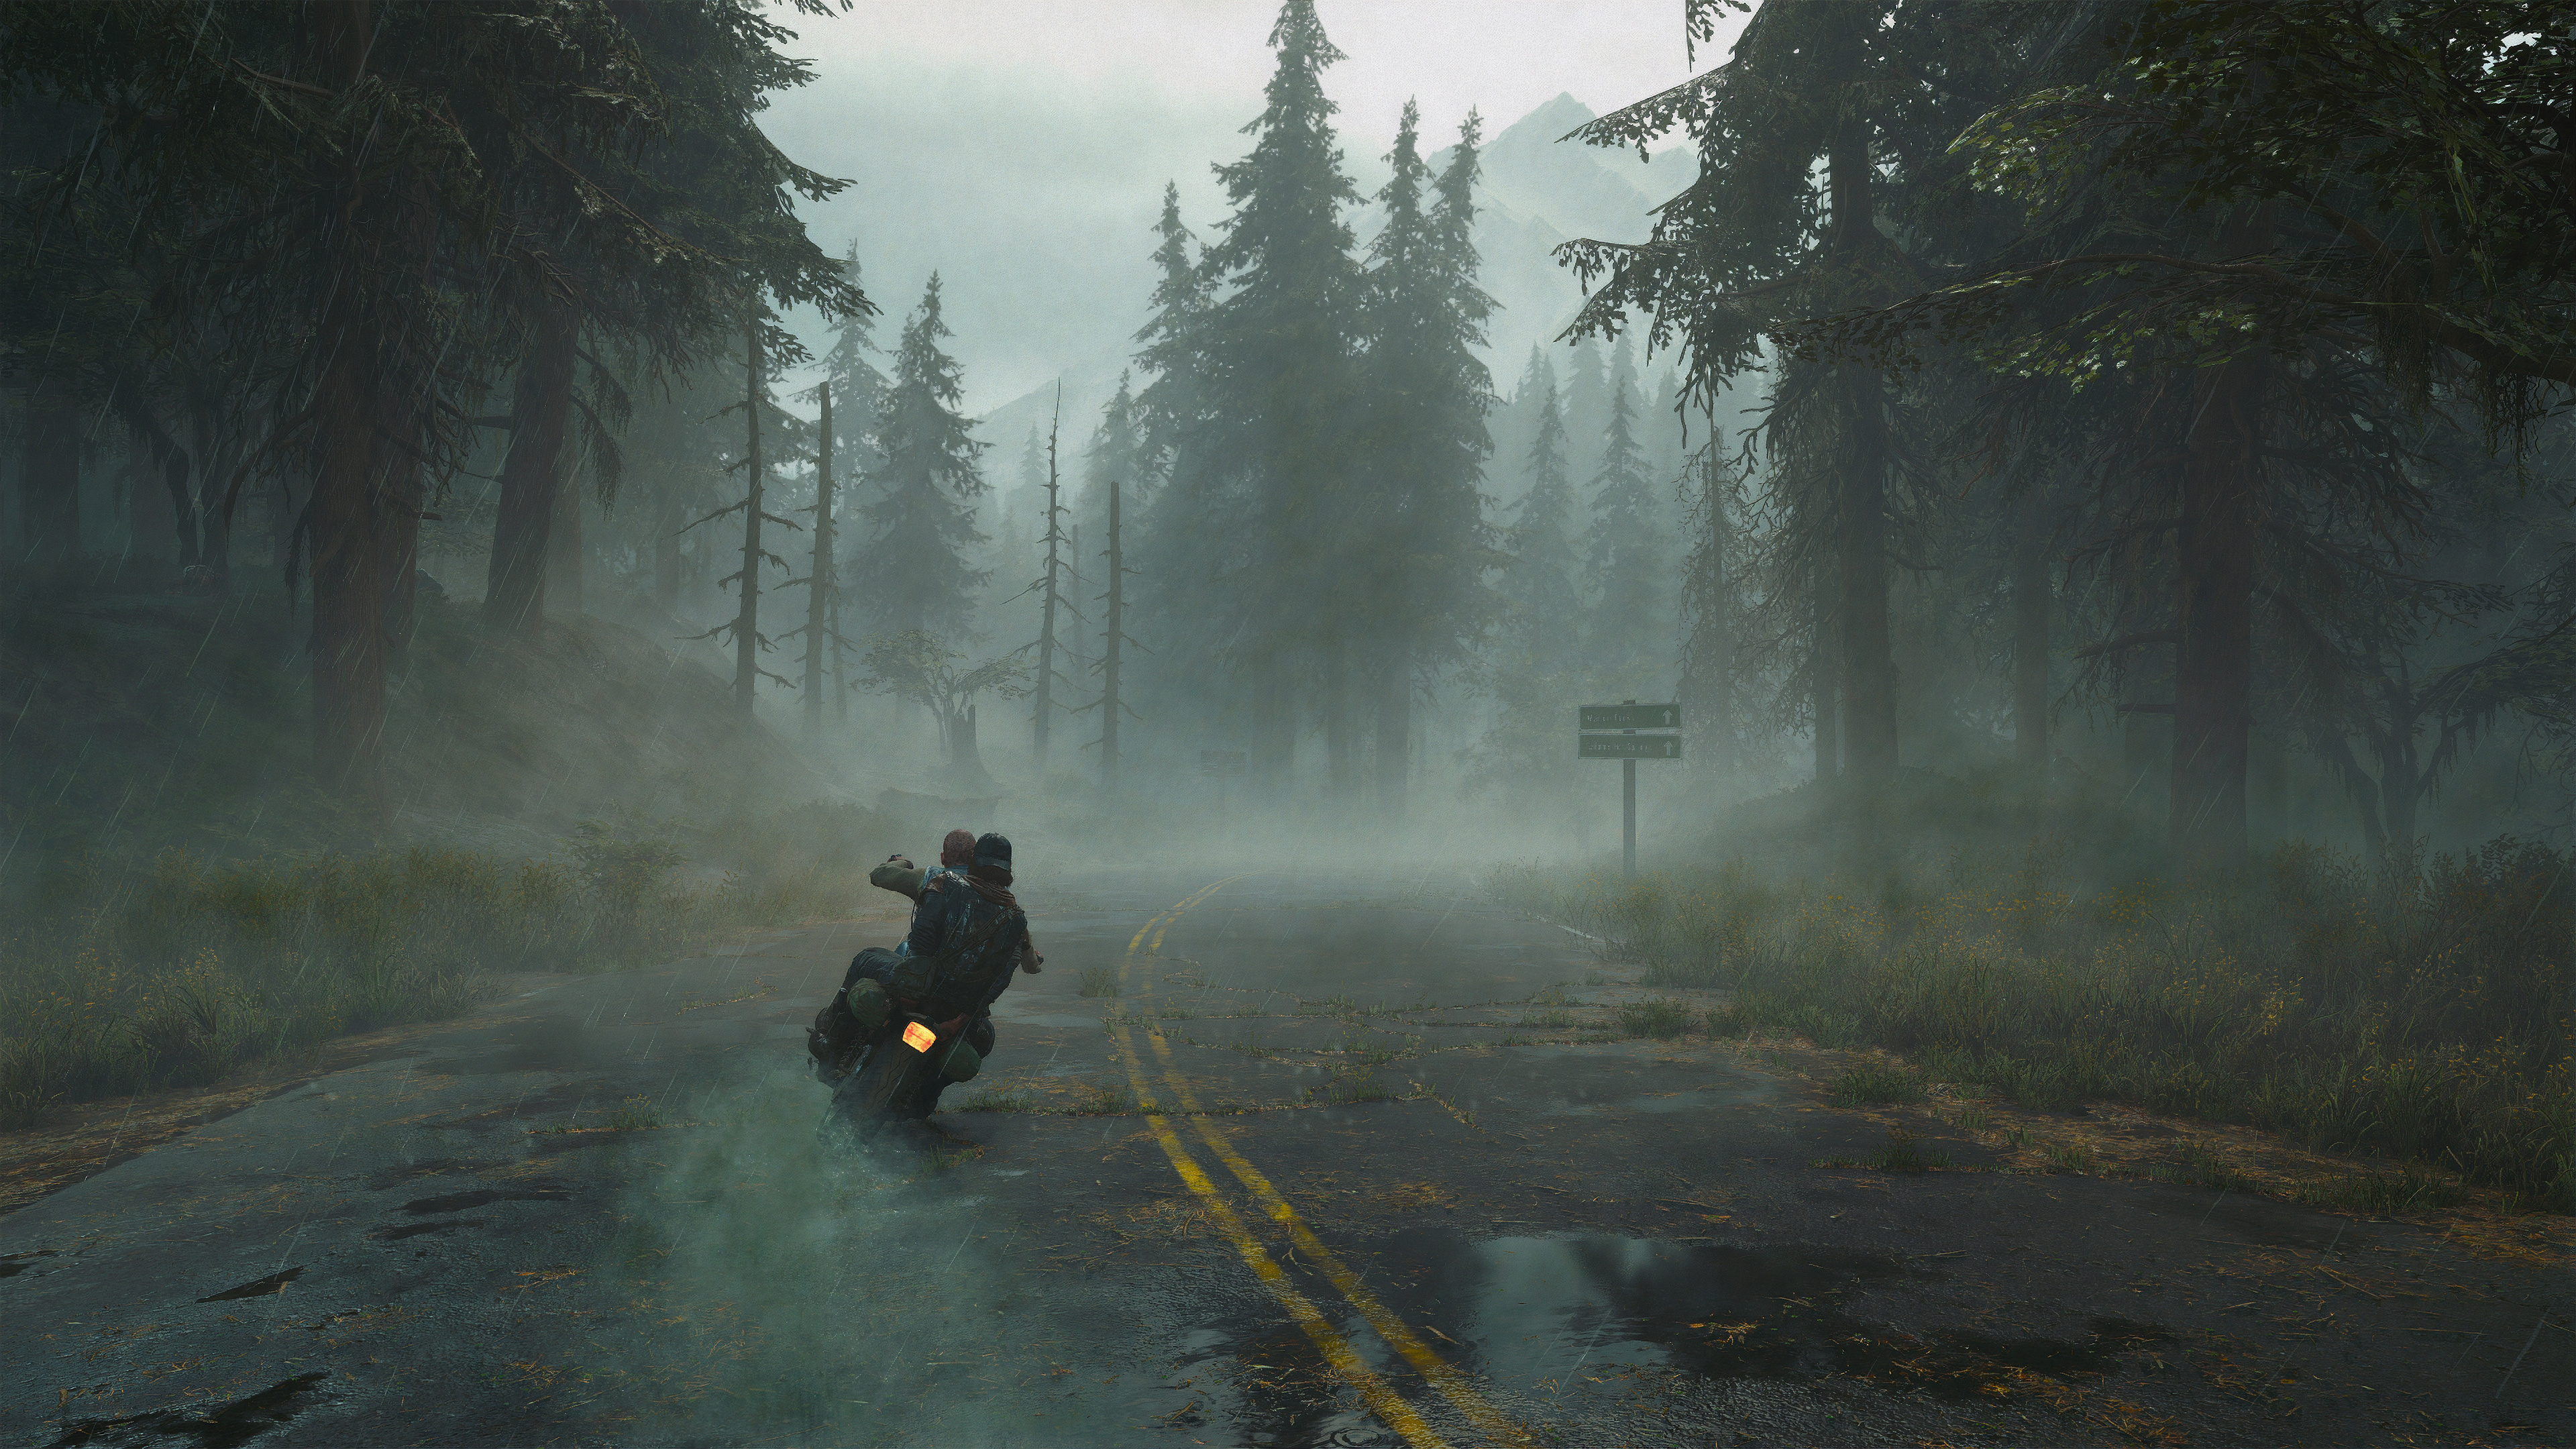 days gone 2019 1568056562 - Days Gone 2019 - hd-wallpapers, games wallpapers, days gone wallpapers, 4k-wallpapers, 2019 games wallpapers